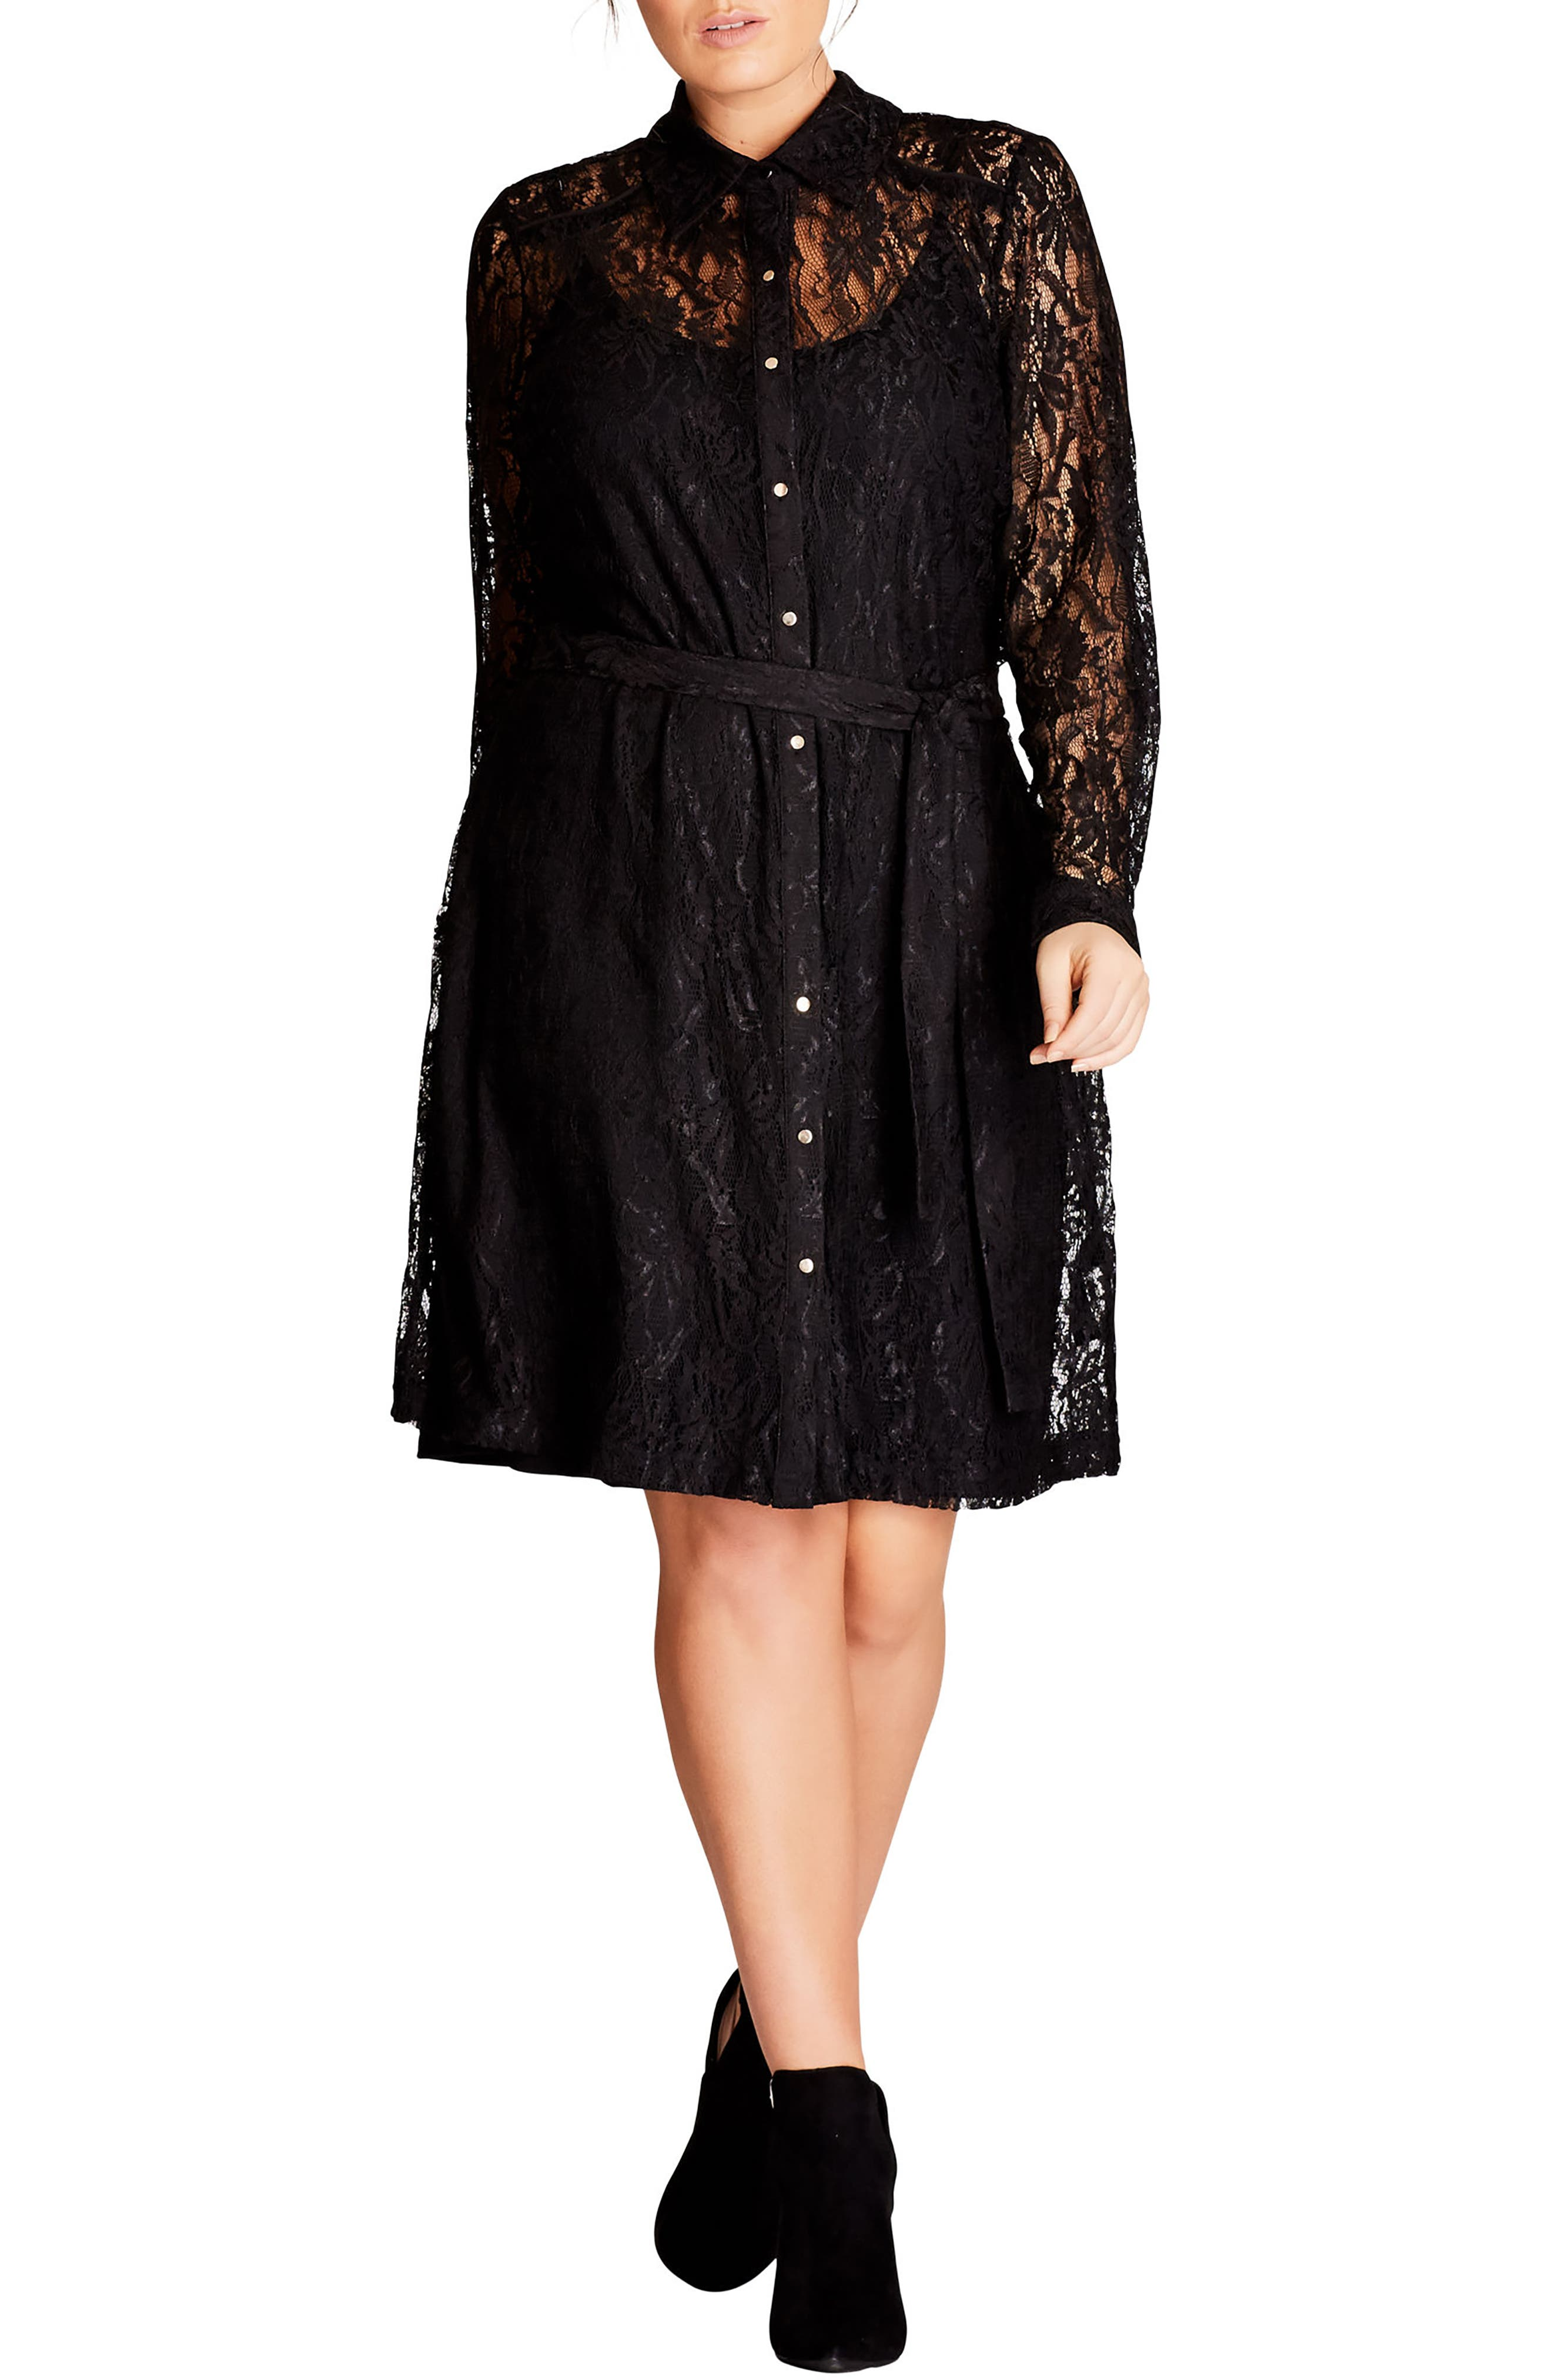 Alternate Image 1 Selected - City Chic Sweet Collar Lace Shirtdress (Plus Size)